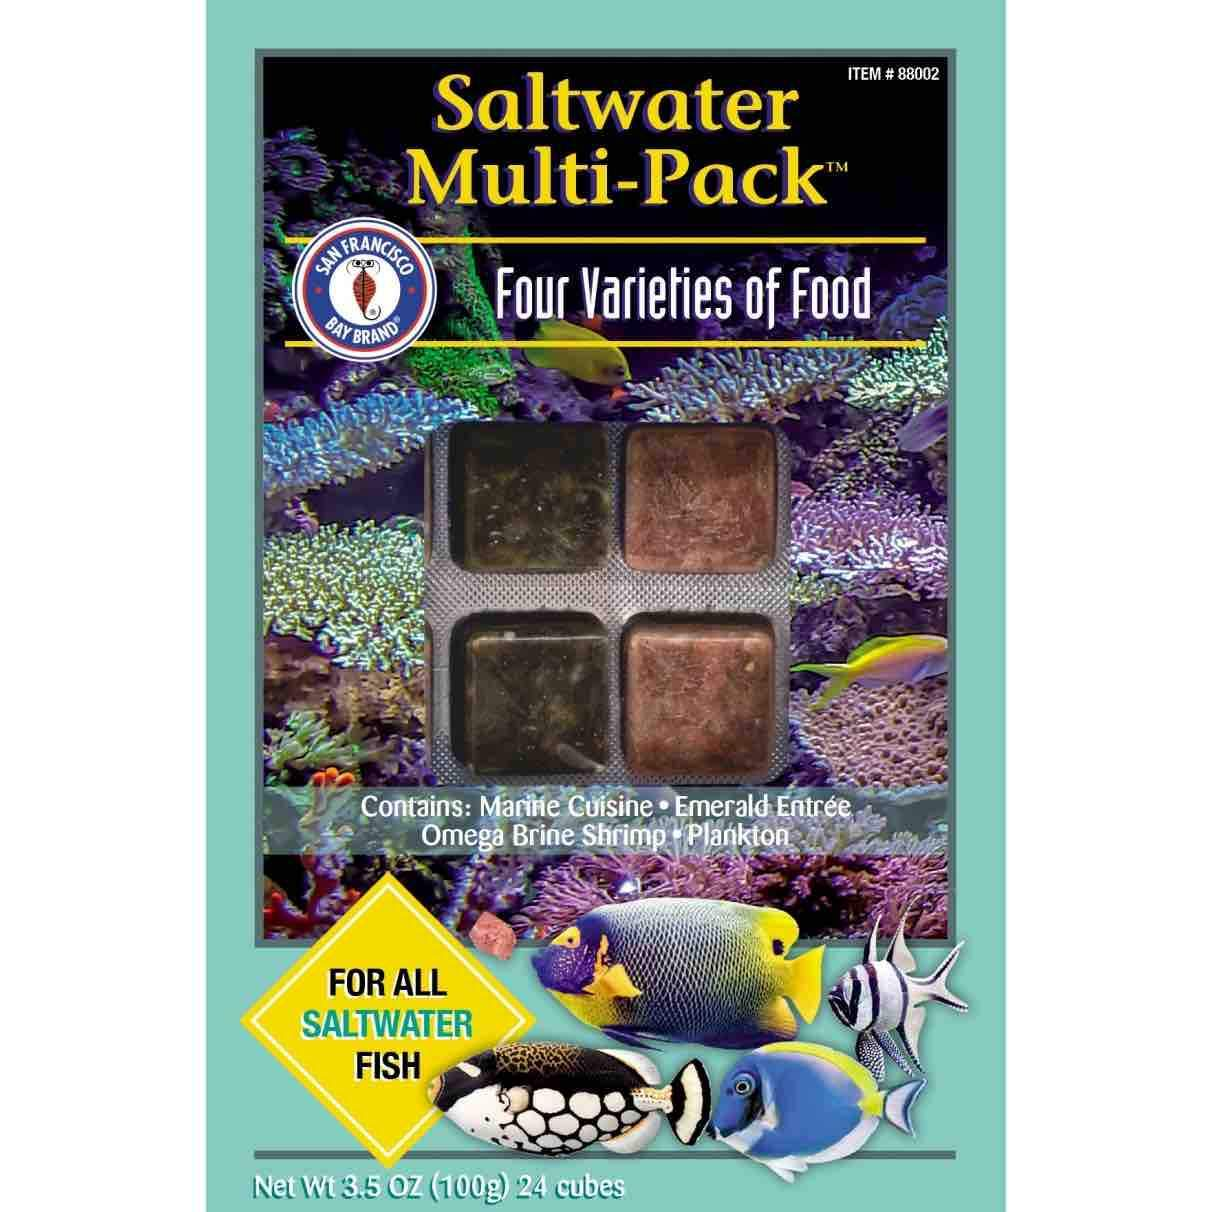 Frozen Aquarium Food Frozen Fish Food Saltwater Multipack - San Francisco Bay Brand